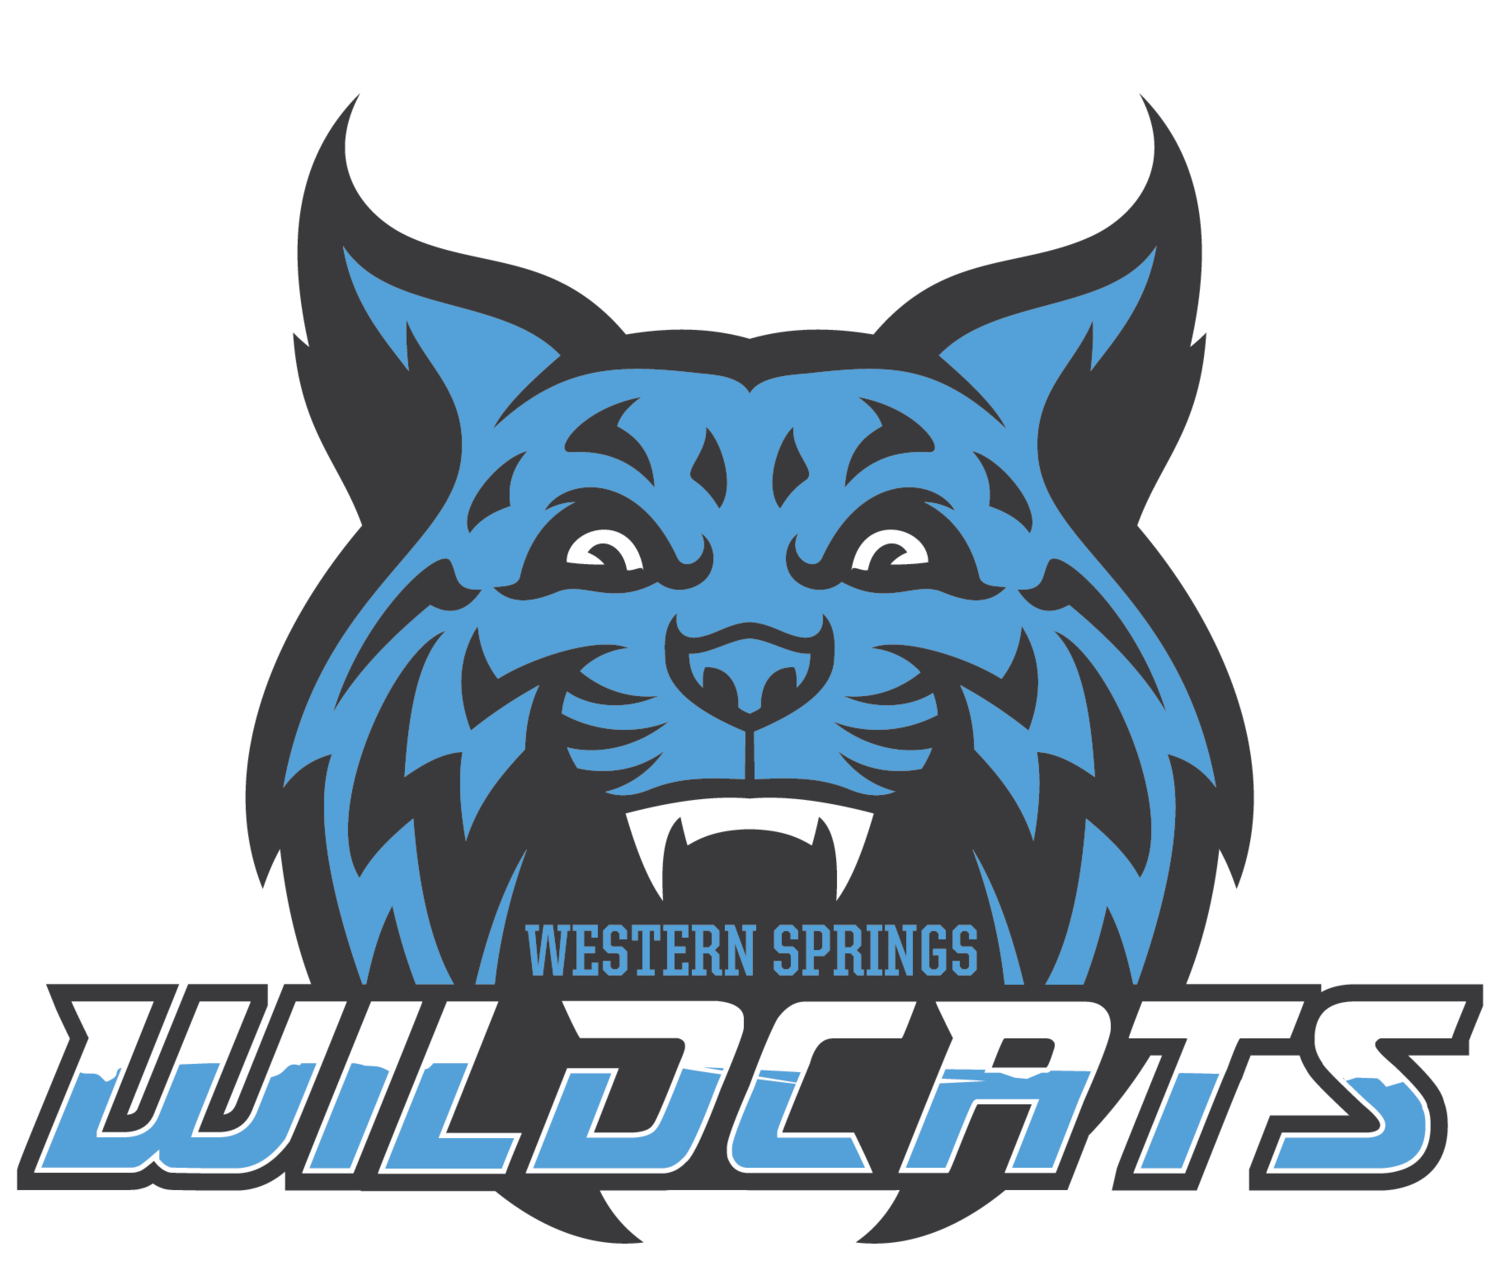 Western Springs Wildcats